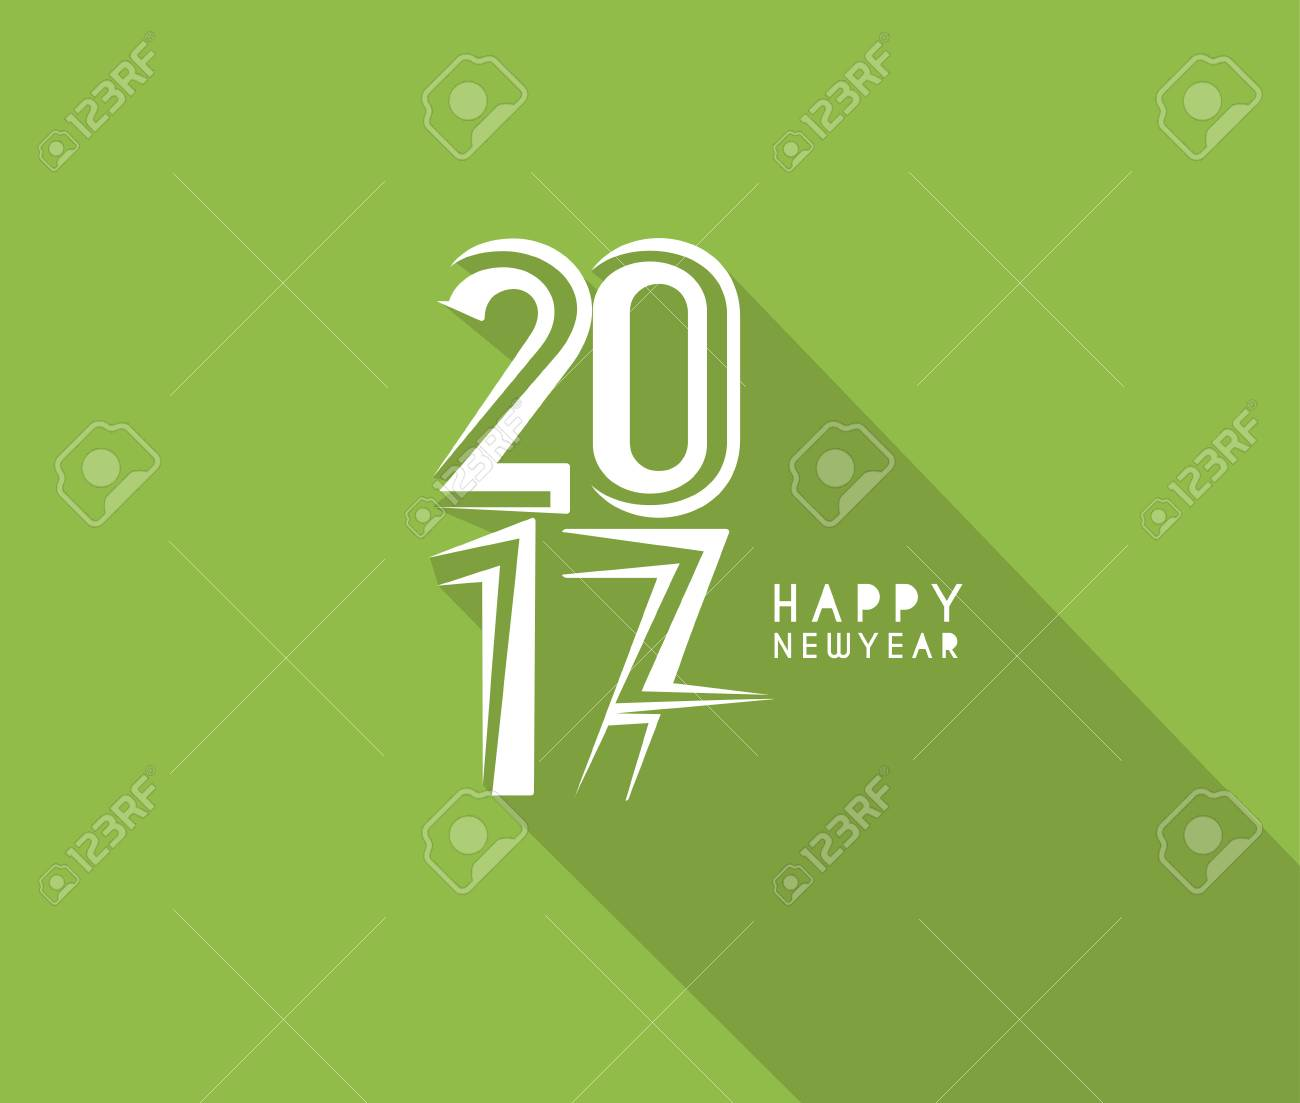 Happy New Year 2017 New Year Holiday Design Elements For Holiday